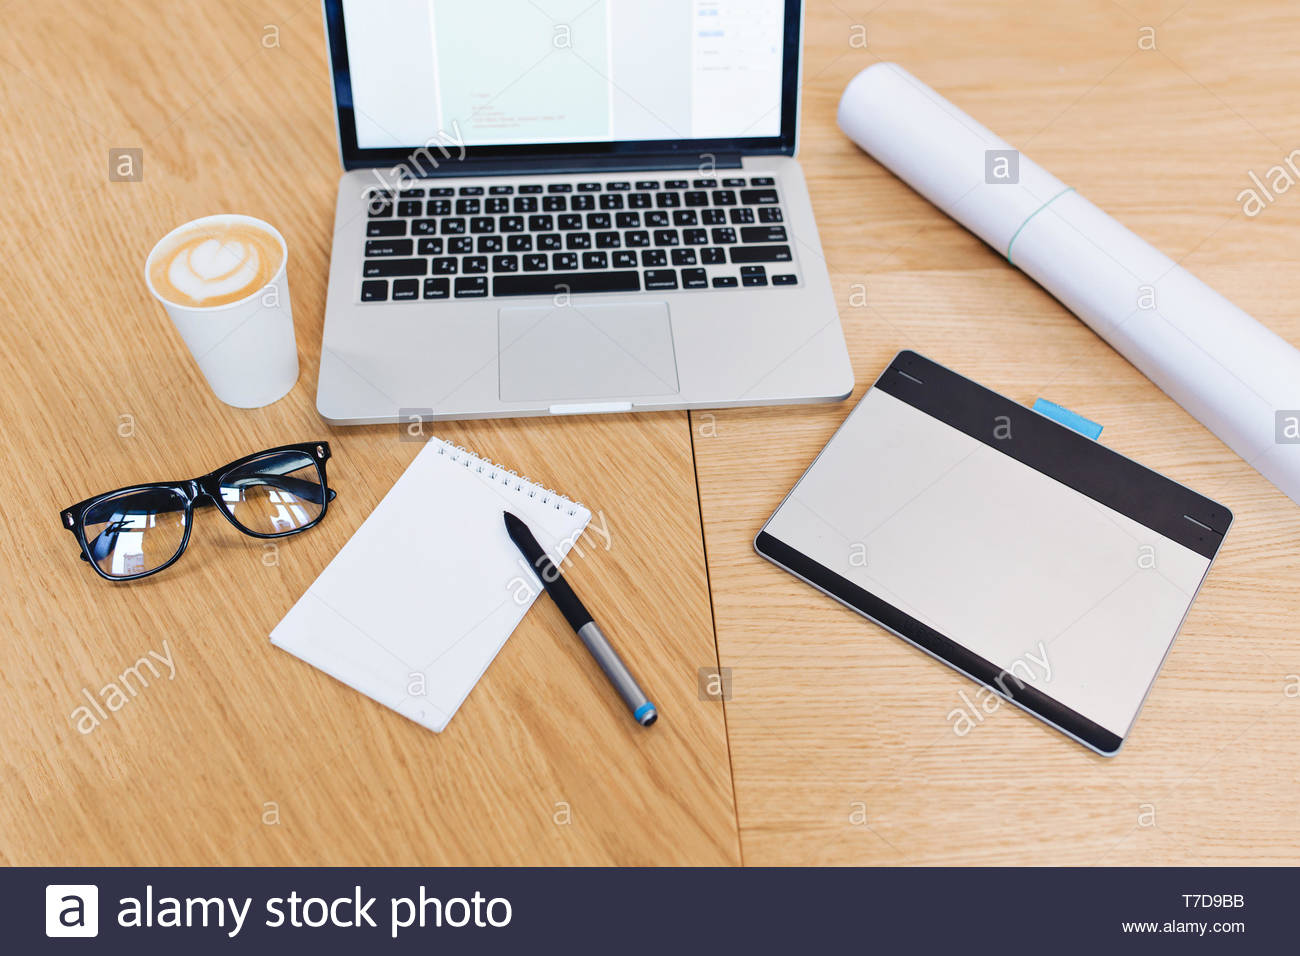 Modern image of work stuff on table from above view. Laptop, black glasses, pencil, notebook, coffee, designing, creativity, working study - Stock Image